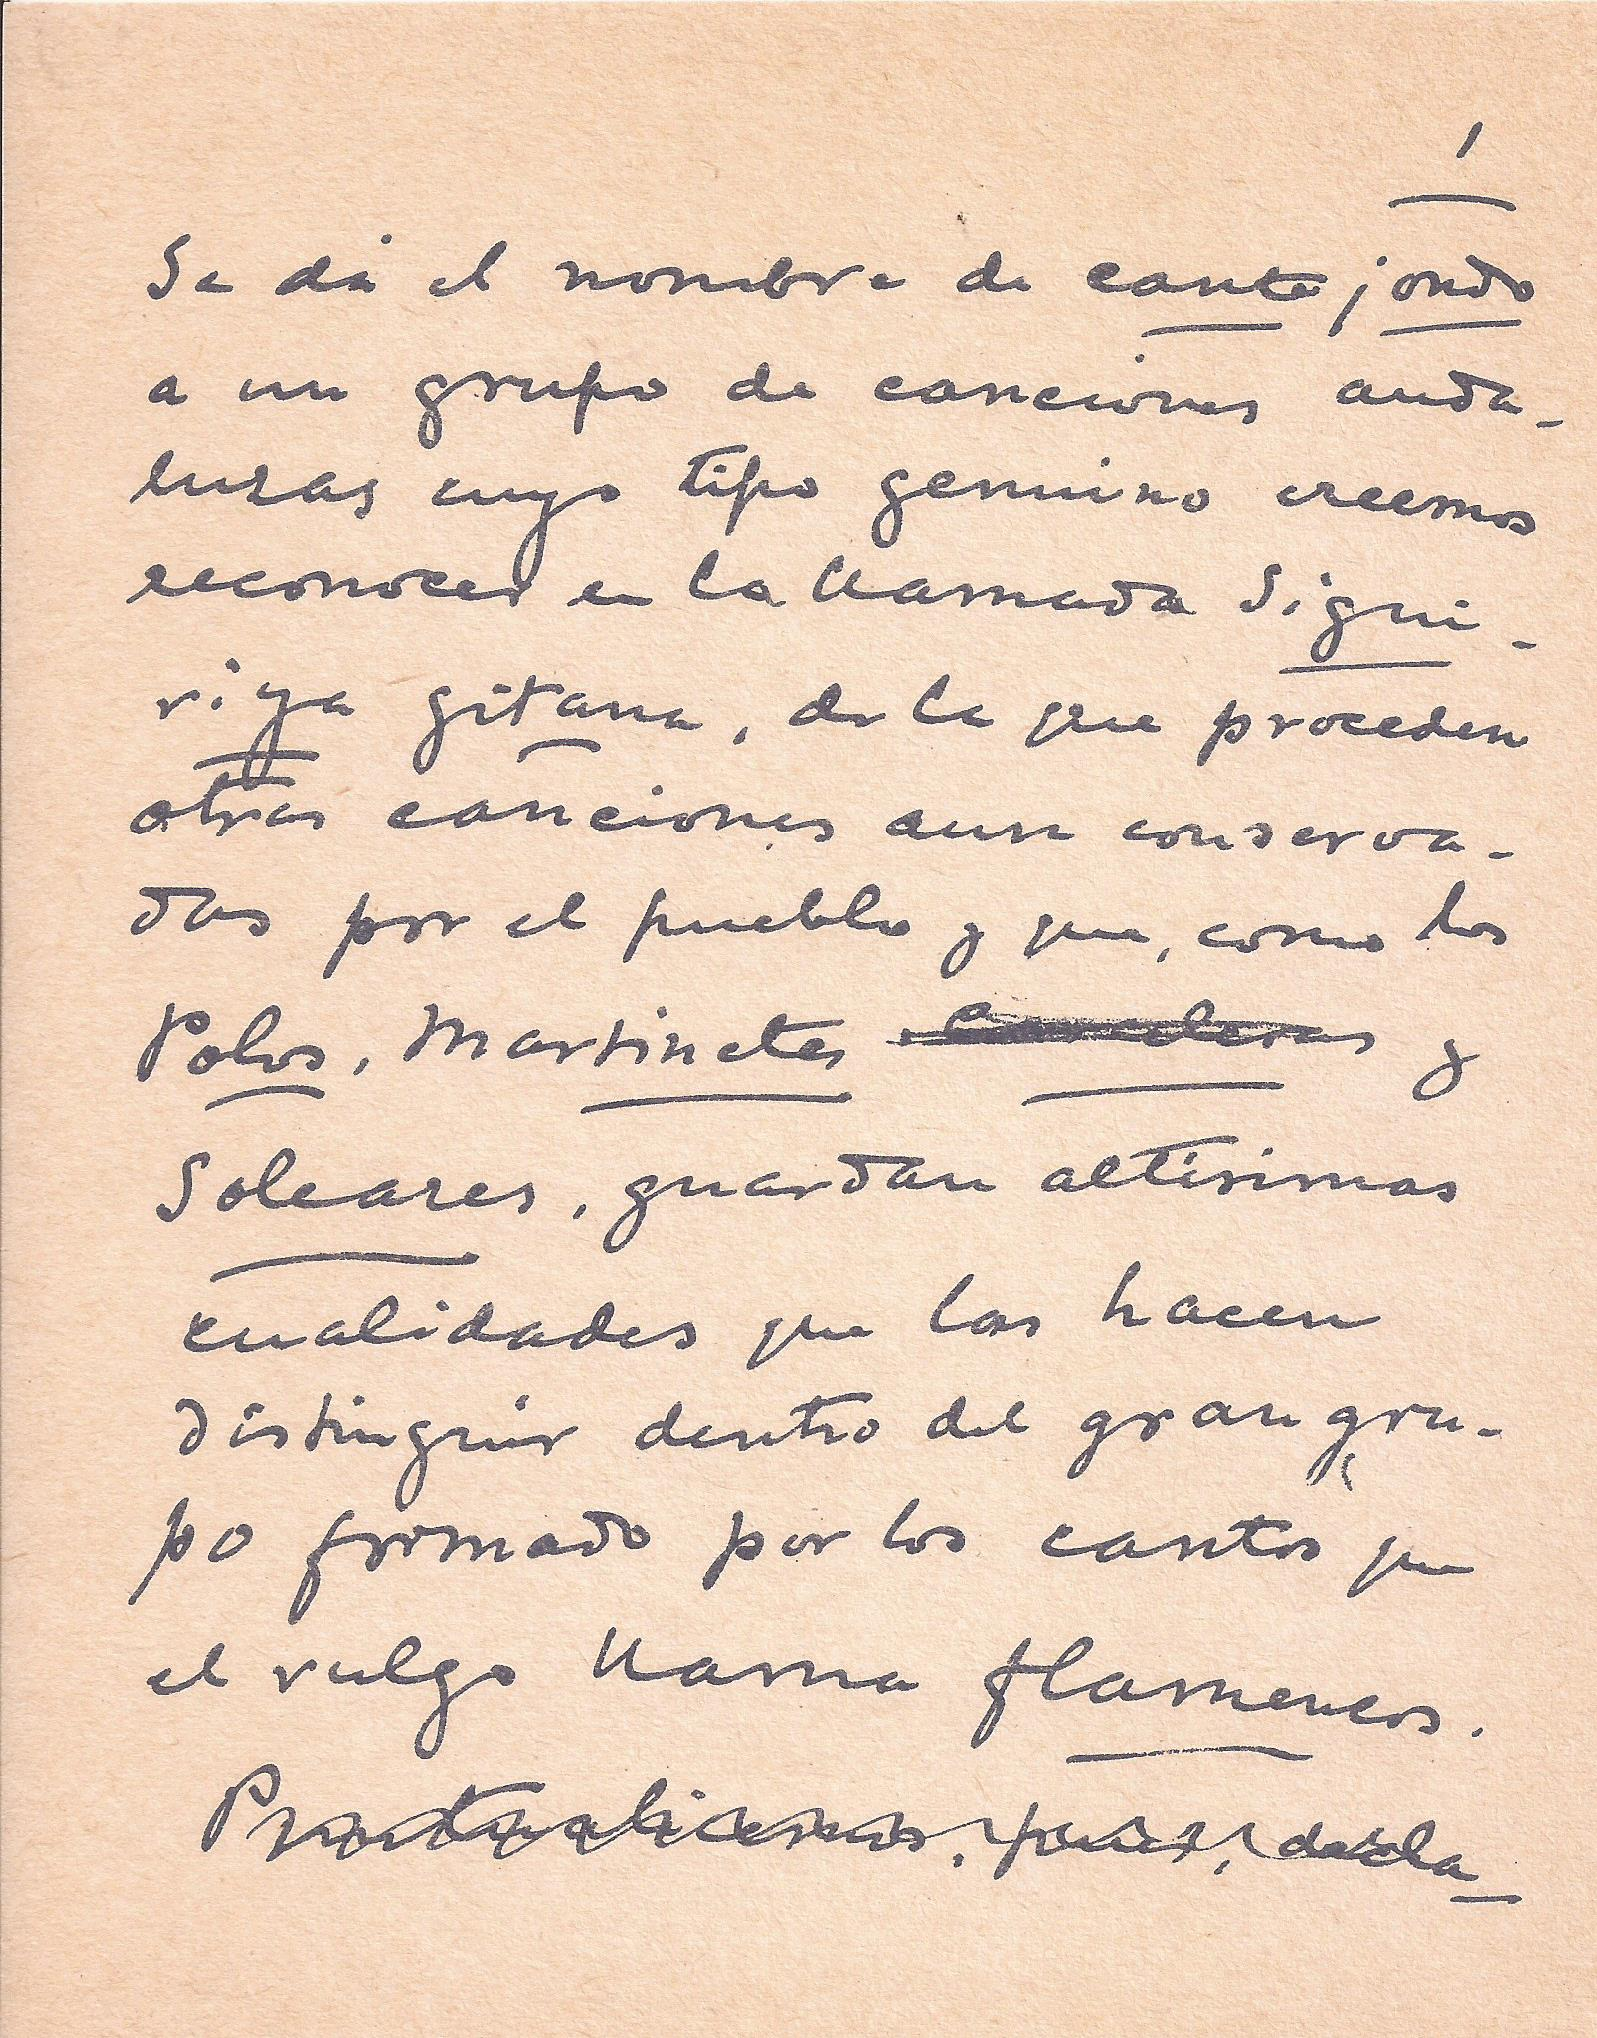 First handwritten page of Manuel de Falla's article on the Deep Song.